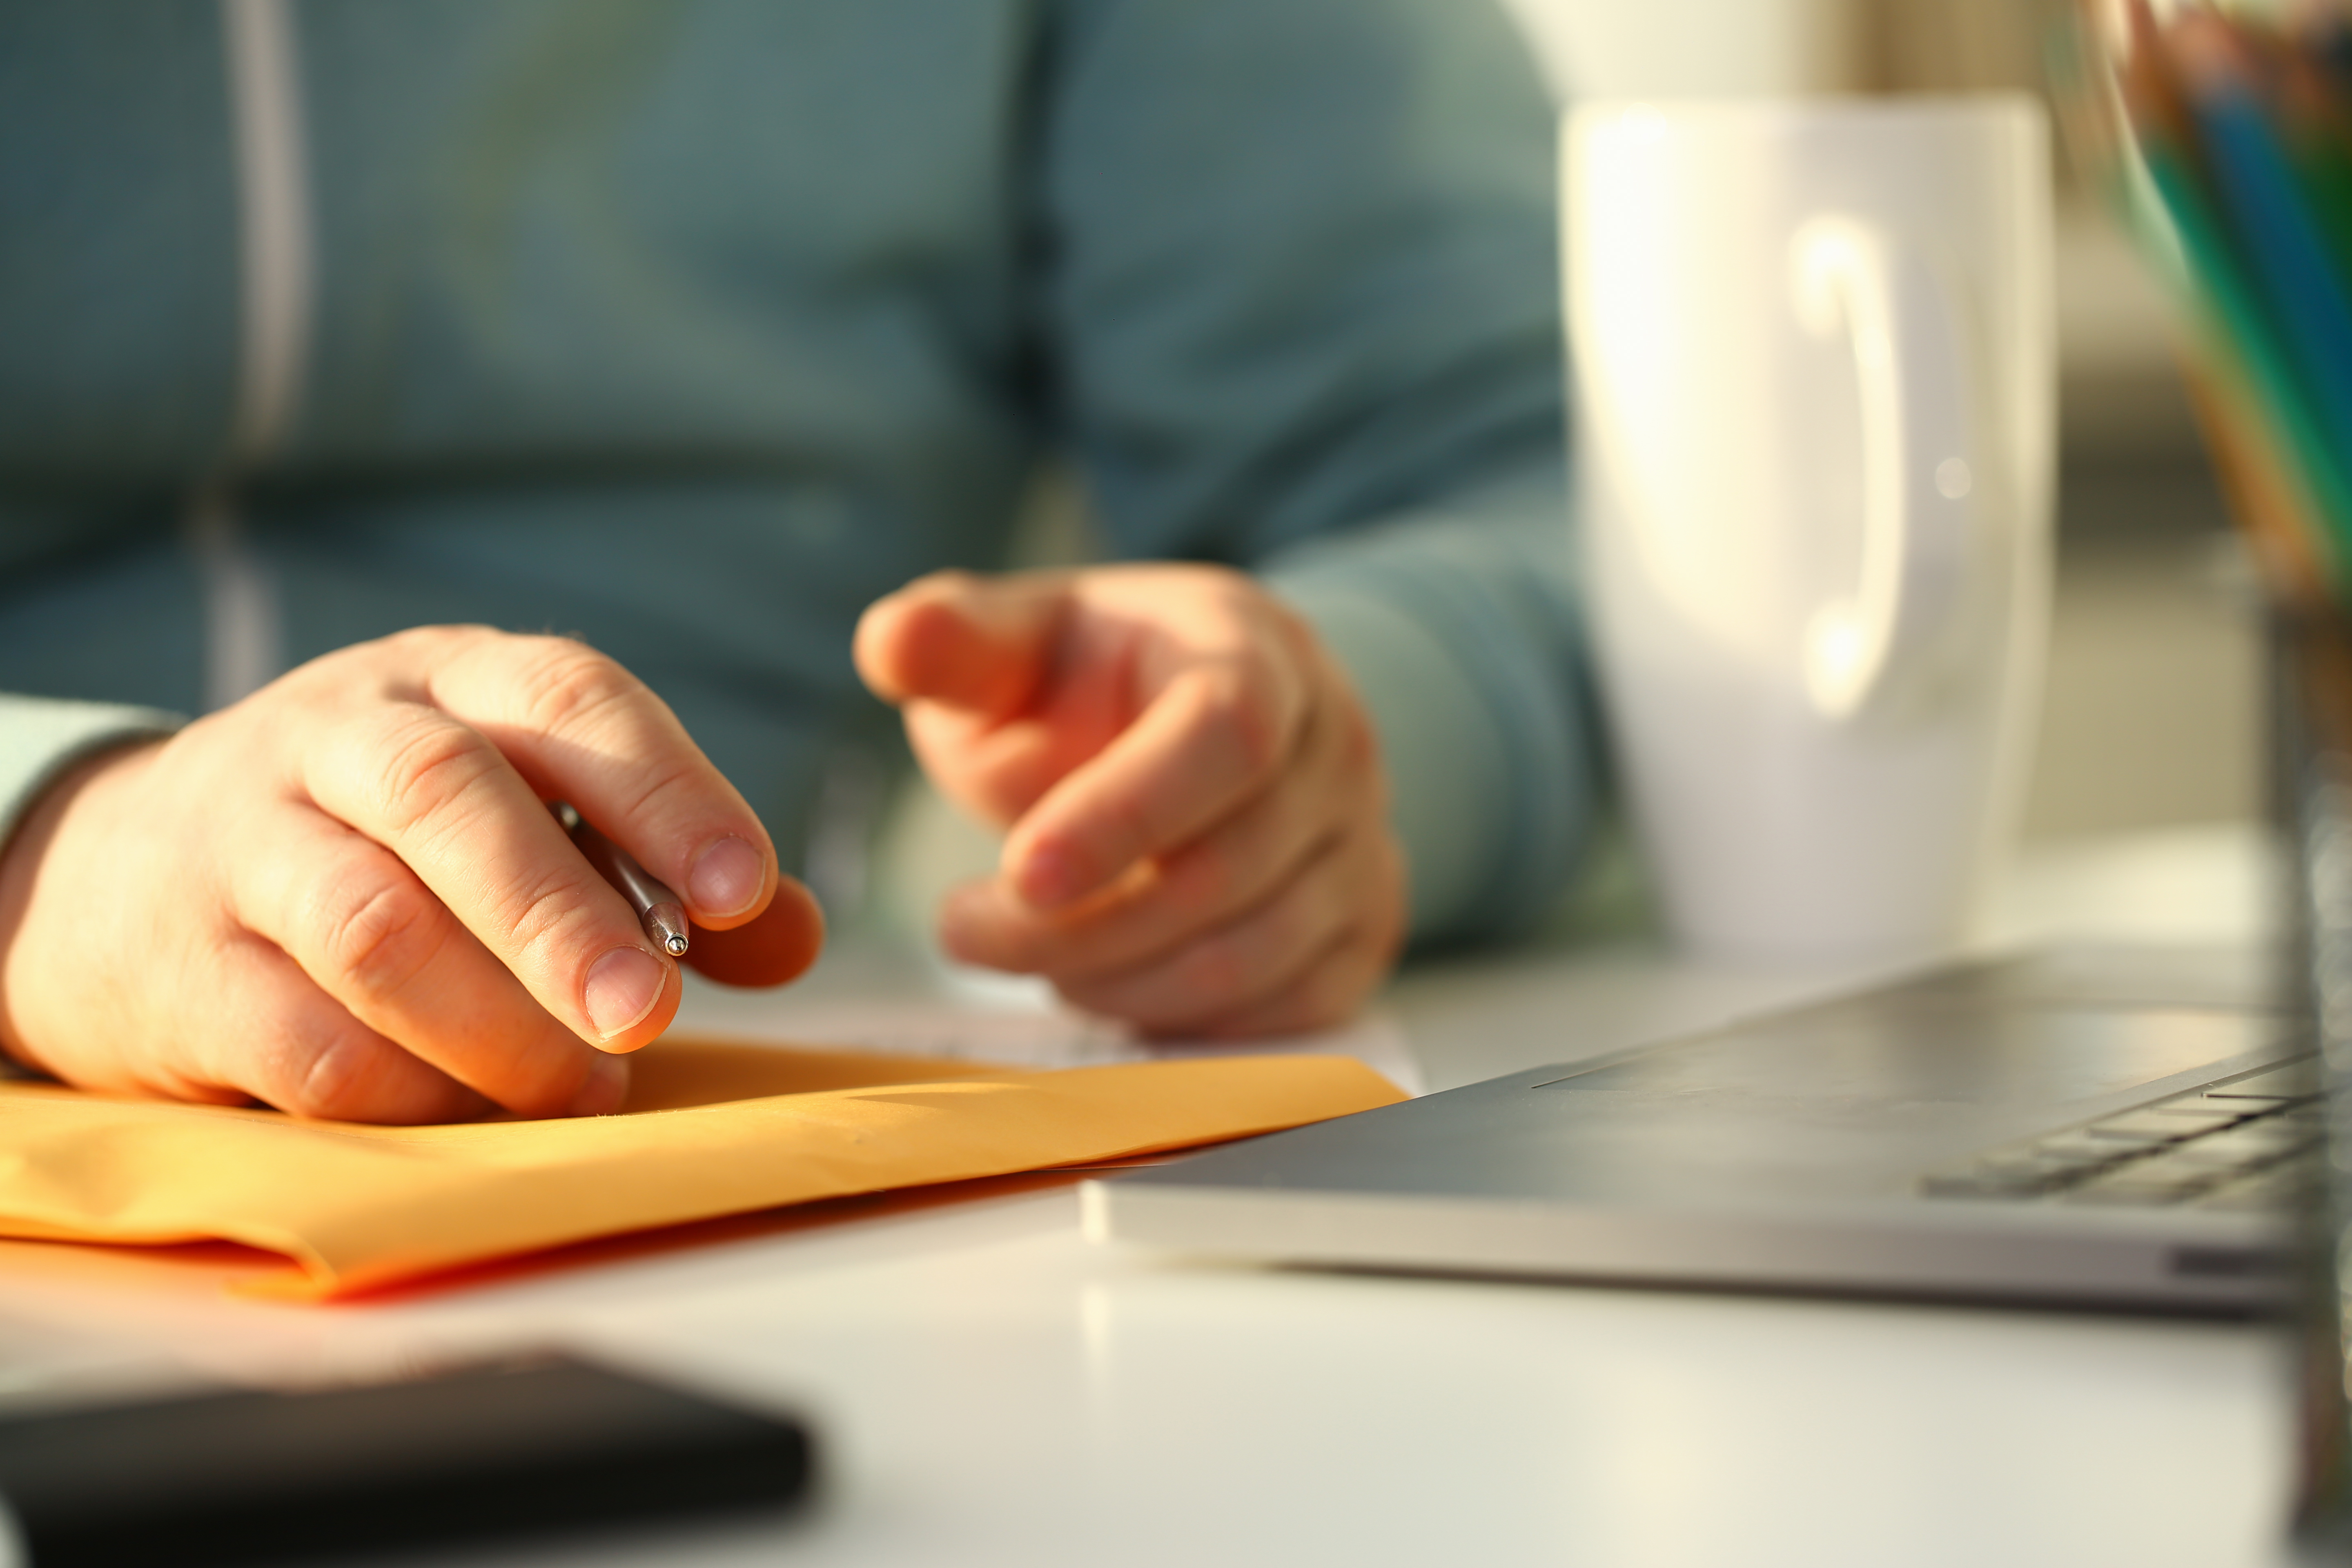 How to Write a Complaint Letter About a Supervisor | Career Trend